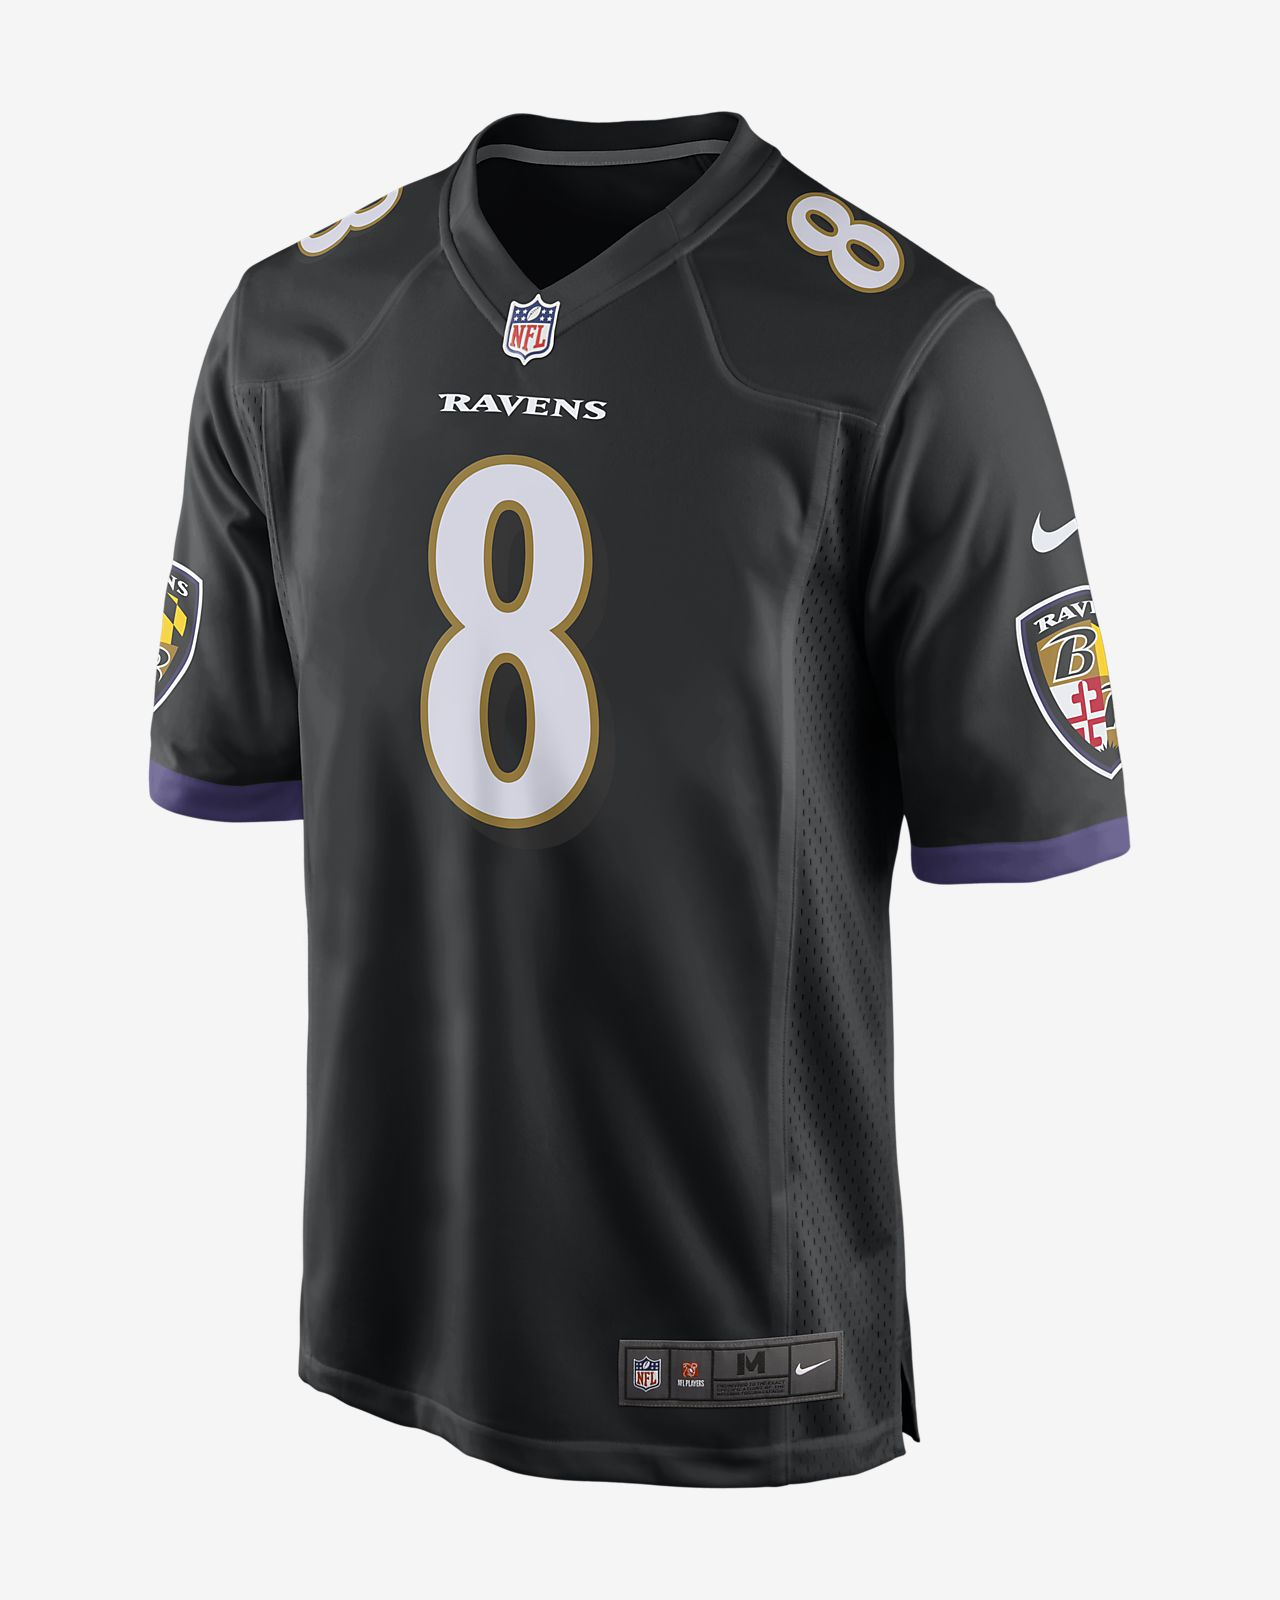 001e0199548 ... NFL Baltimore Ravens (Lamar Jackson) Men's Game Football Jersey